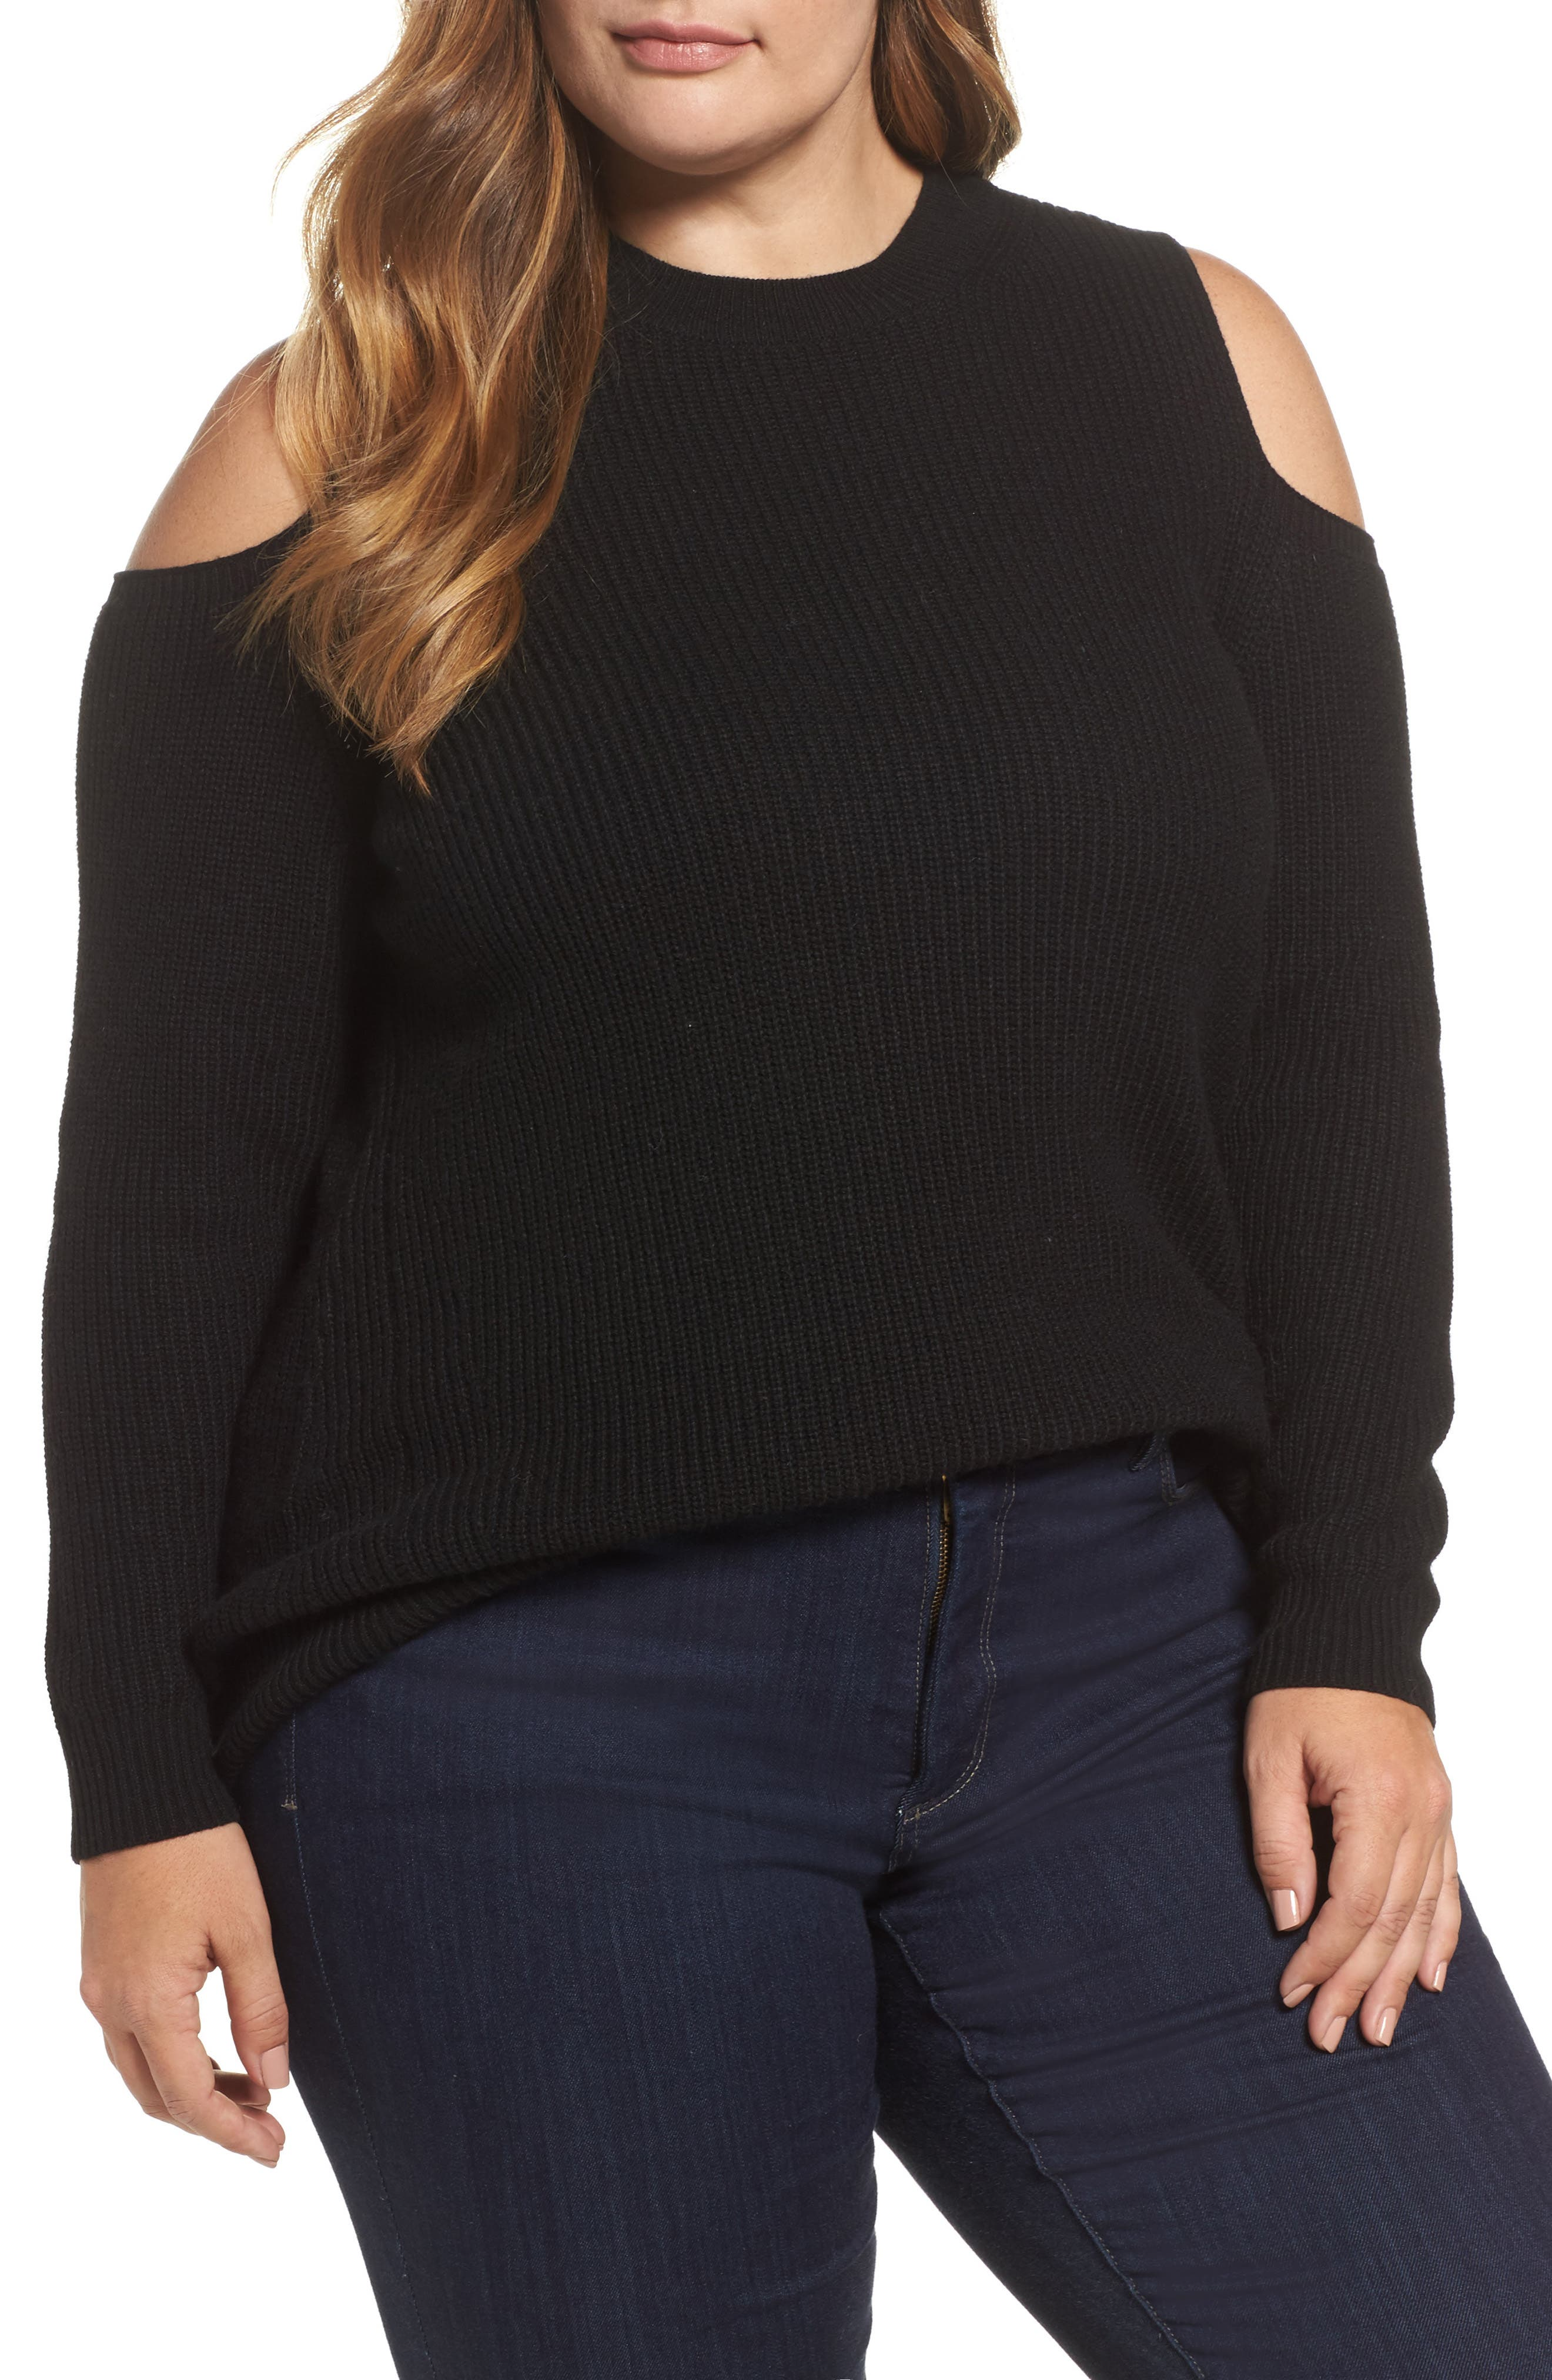 Main Image - Lucky Brand Cold Shoulder Sweater (Plus Size)